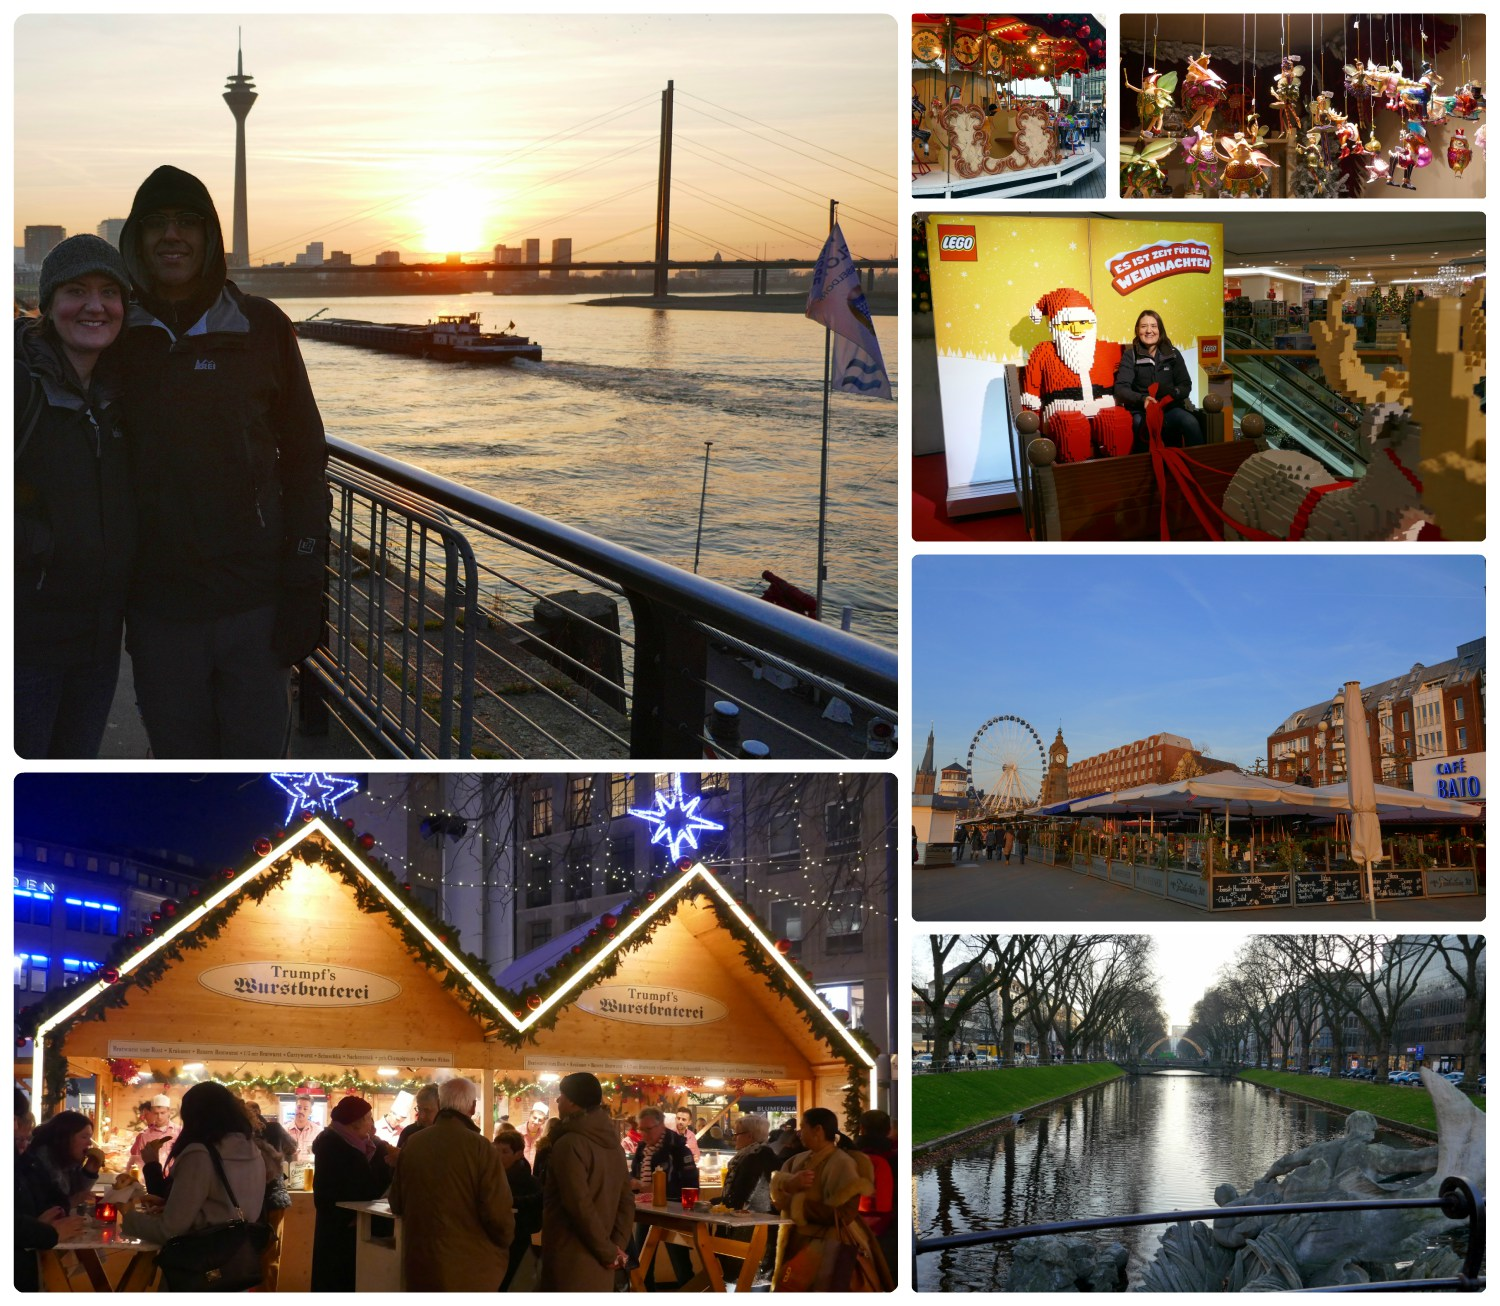 Our day trip to Dusseldorf and the Christmas market.